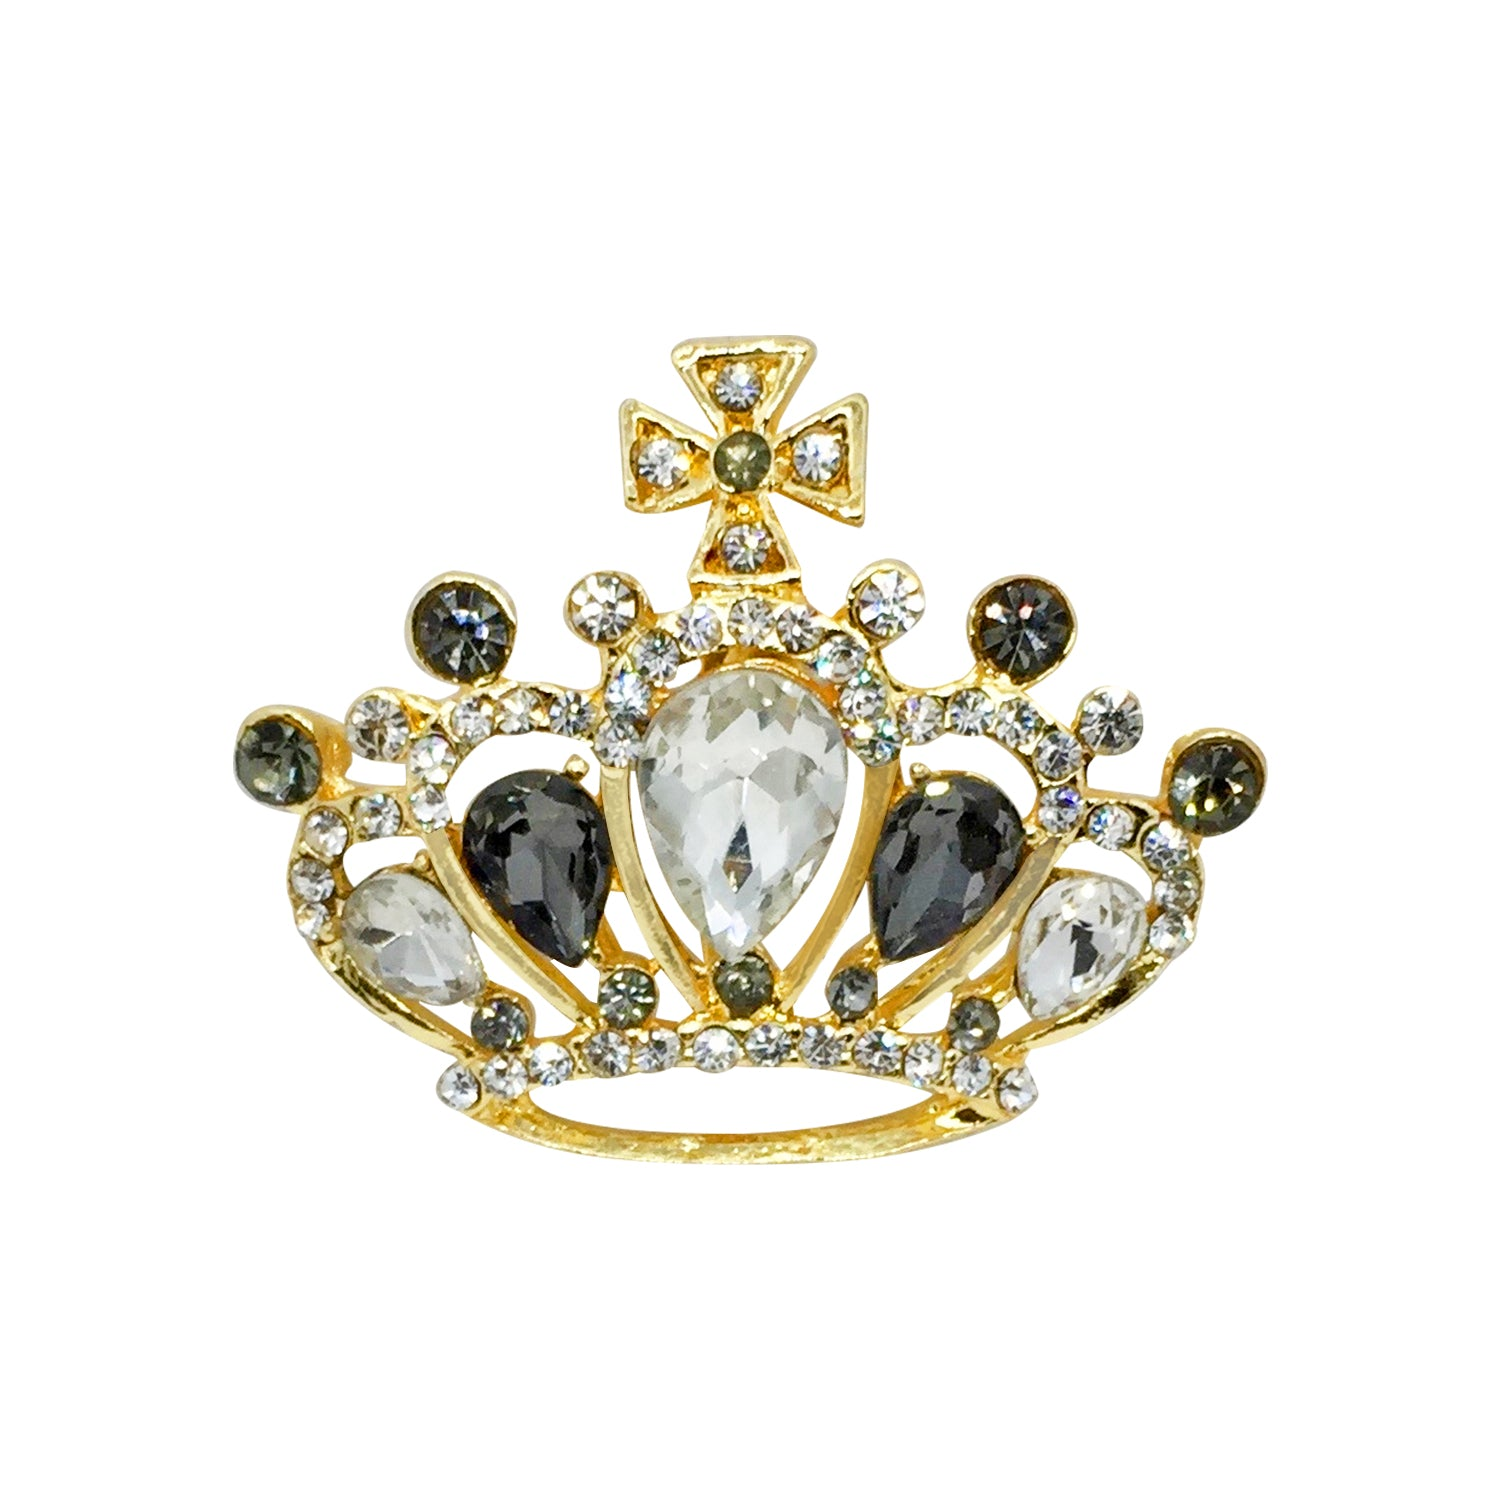 Royal Crown Brooch